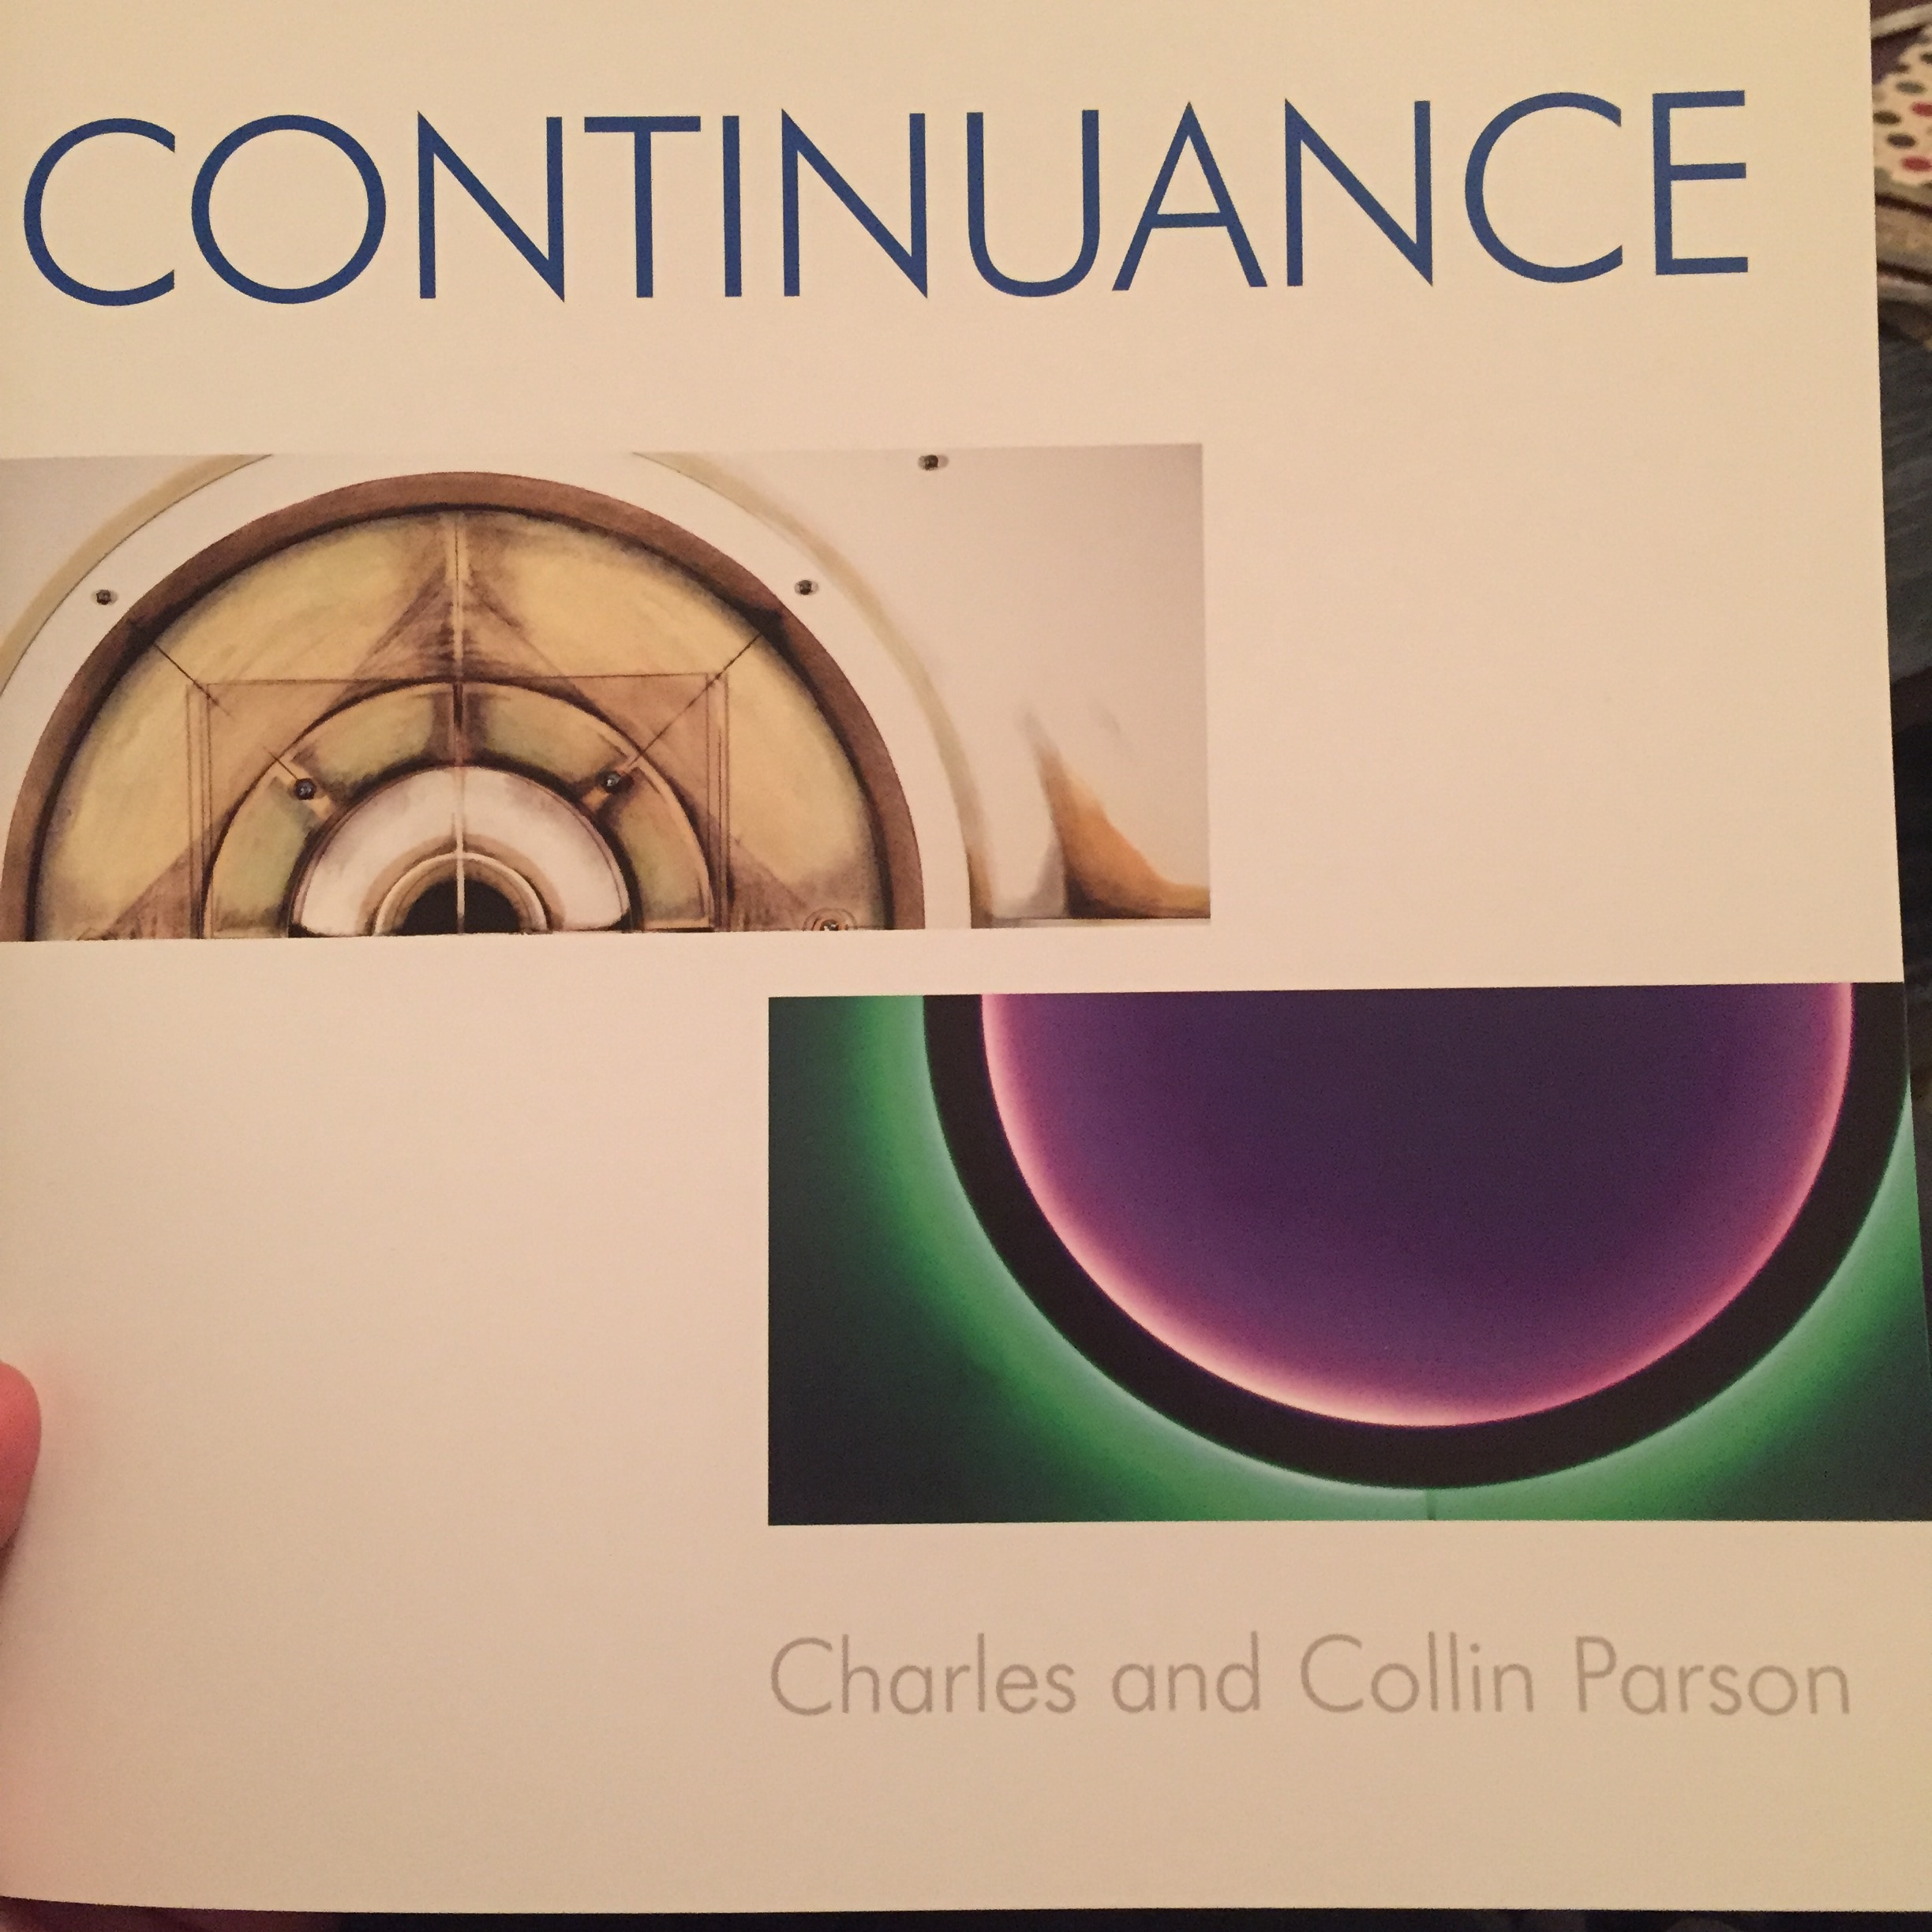 Continuance Catalog or Catalogue if British